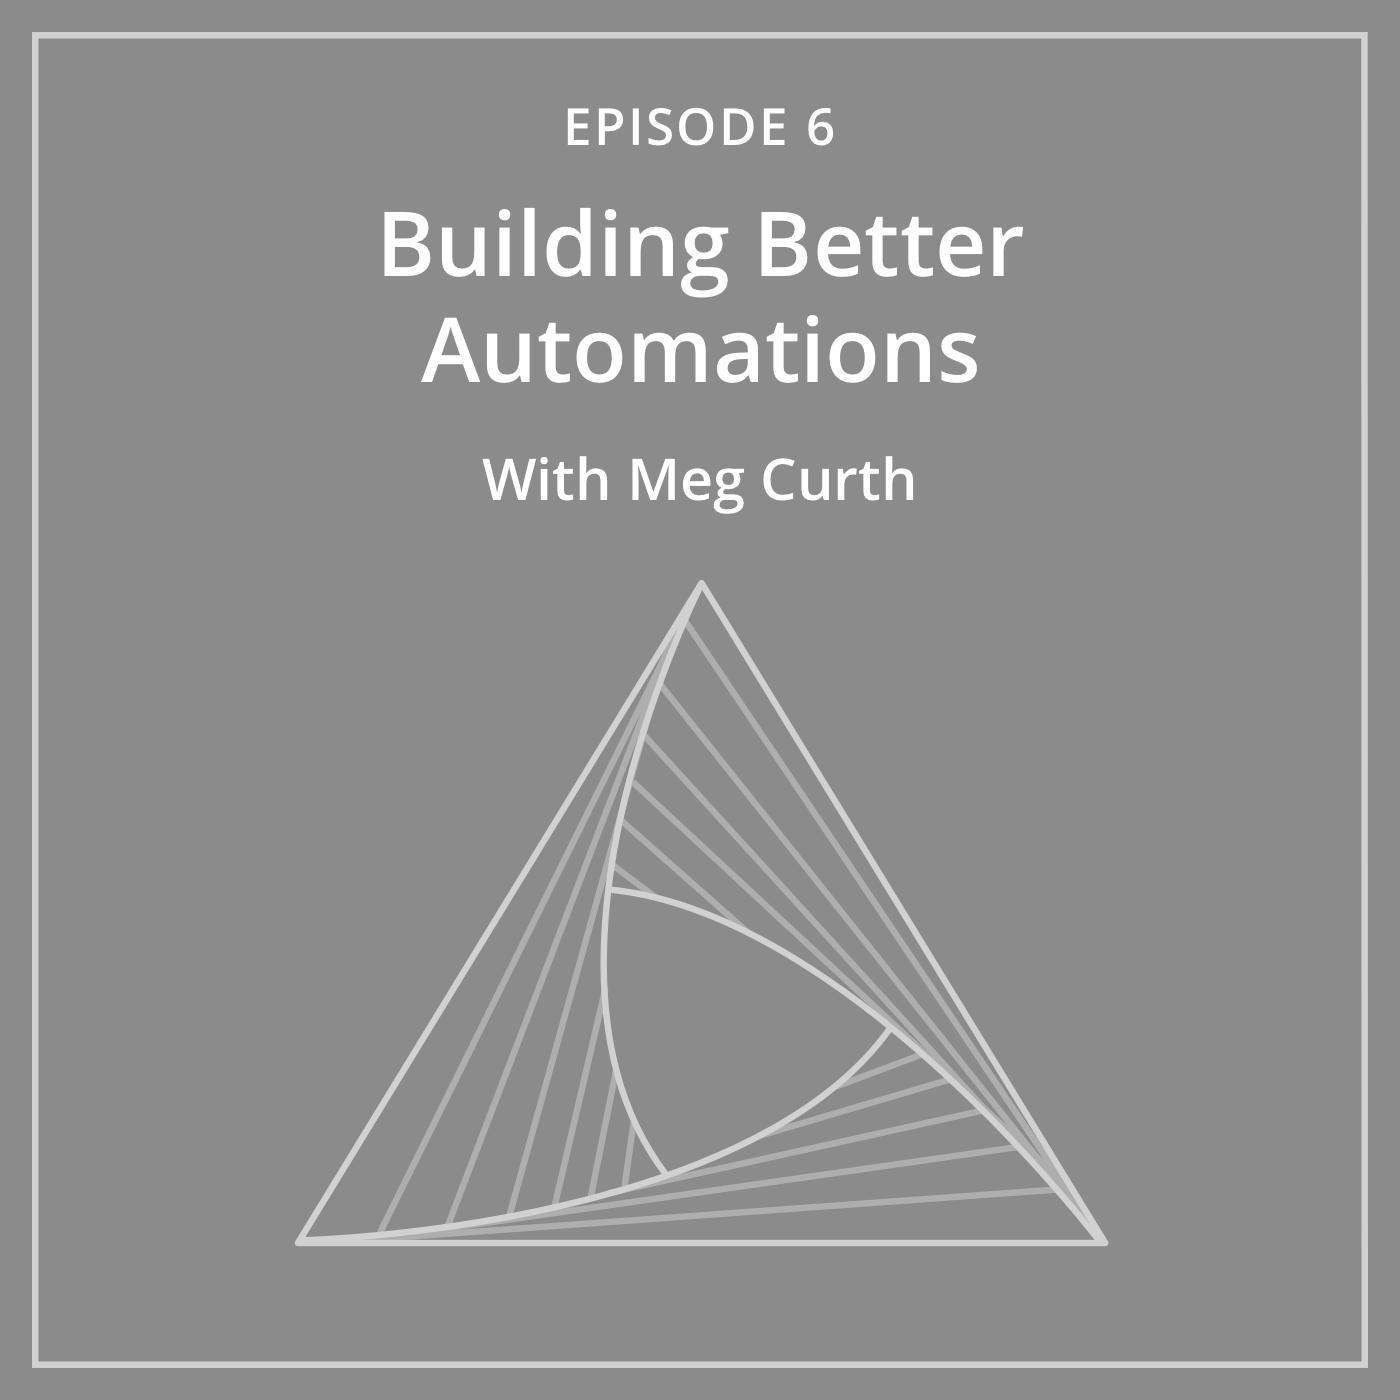 Episode 6: Building Better Automations with Meg Curth